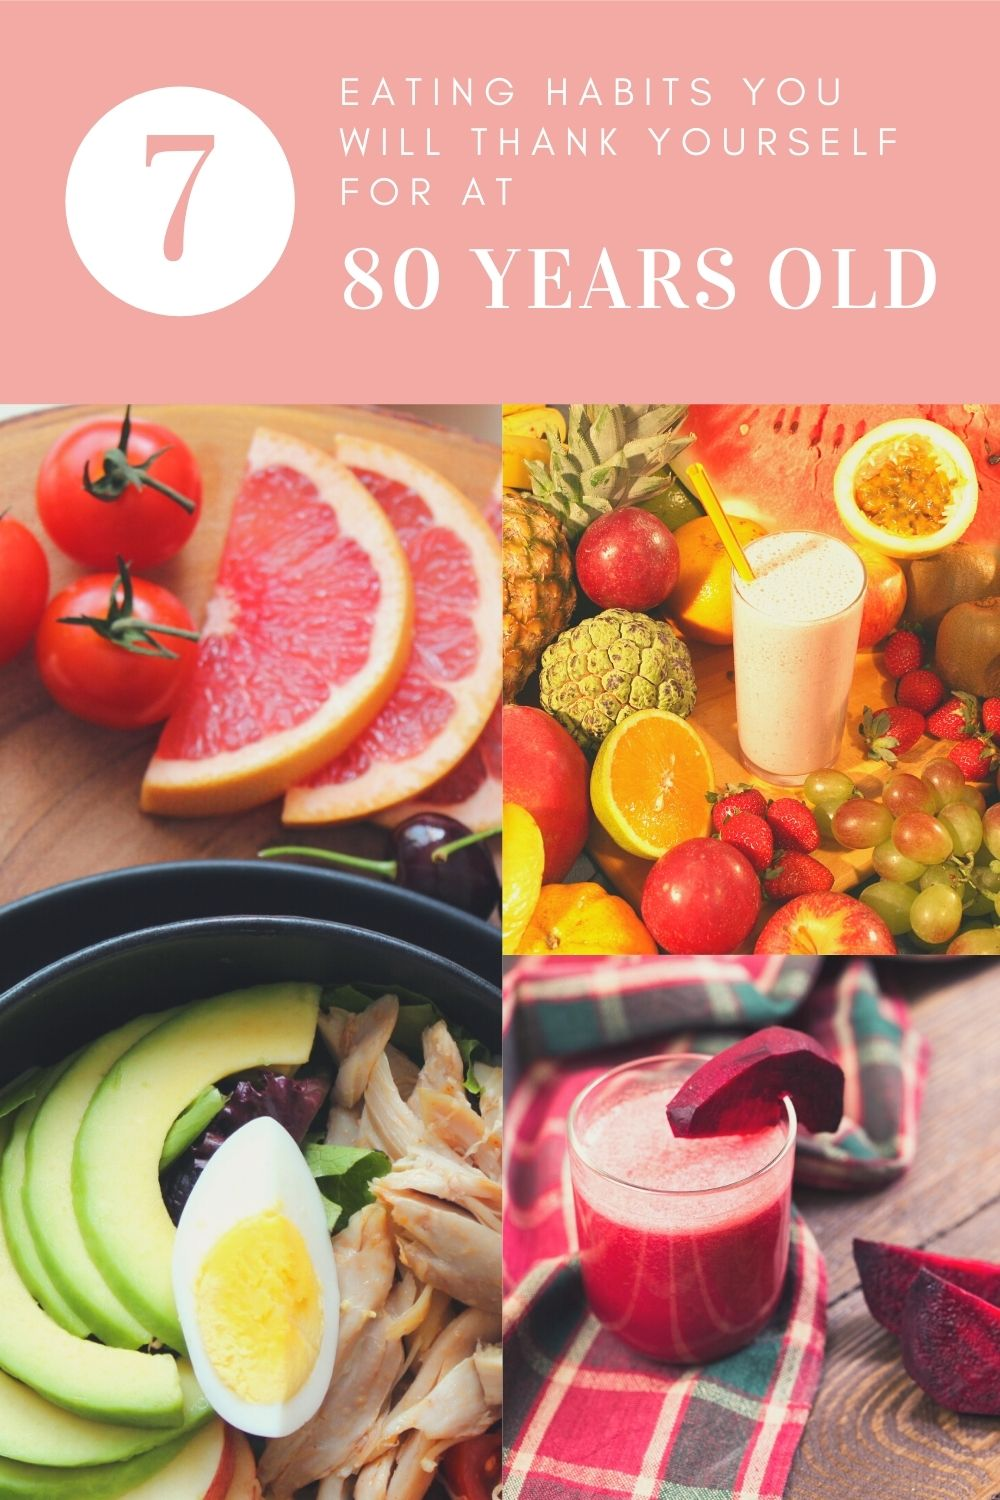 7 eating habits you will thank yourself for at 80 years old